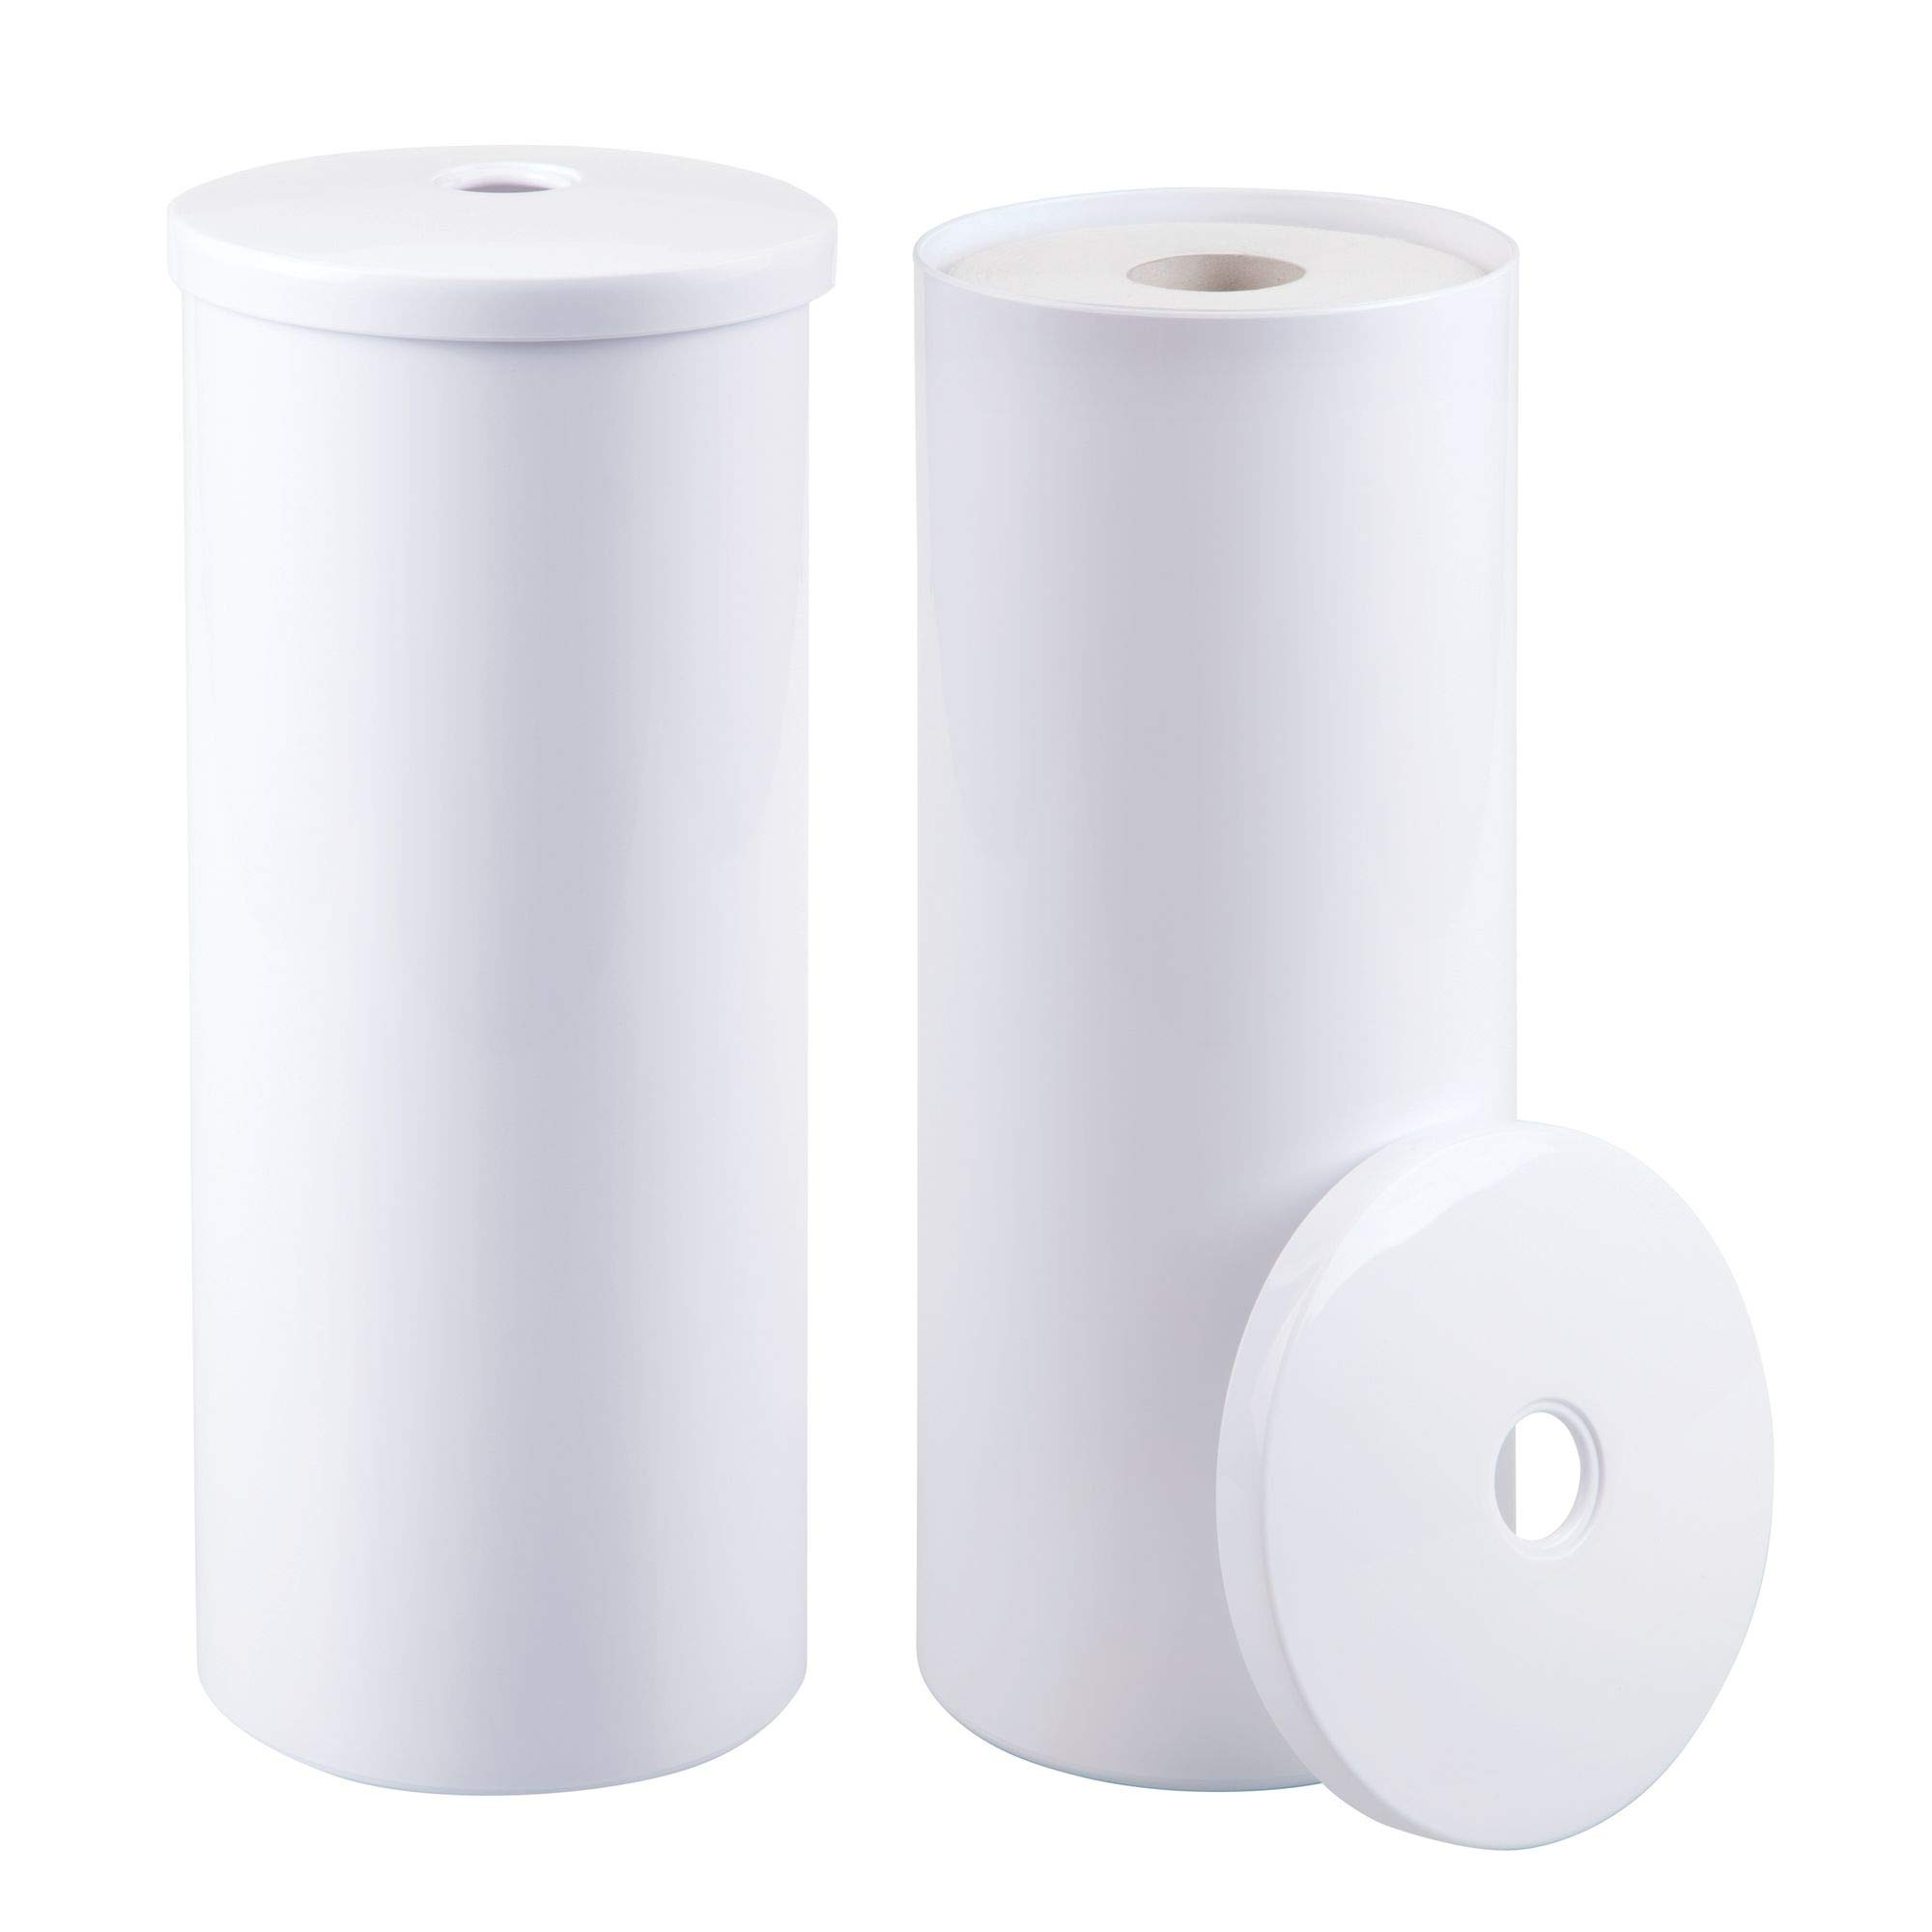 mDesign Modern Plastic Toilet Tissue Paper Roll Holder Canister Stand with Lid - Vertical Bathroom Storage for 3 Rolls of Toilet Tissue - Holds Large Mega Rolls - 2 Pack - White